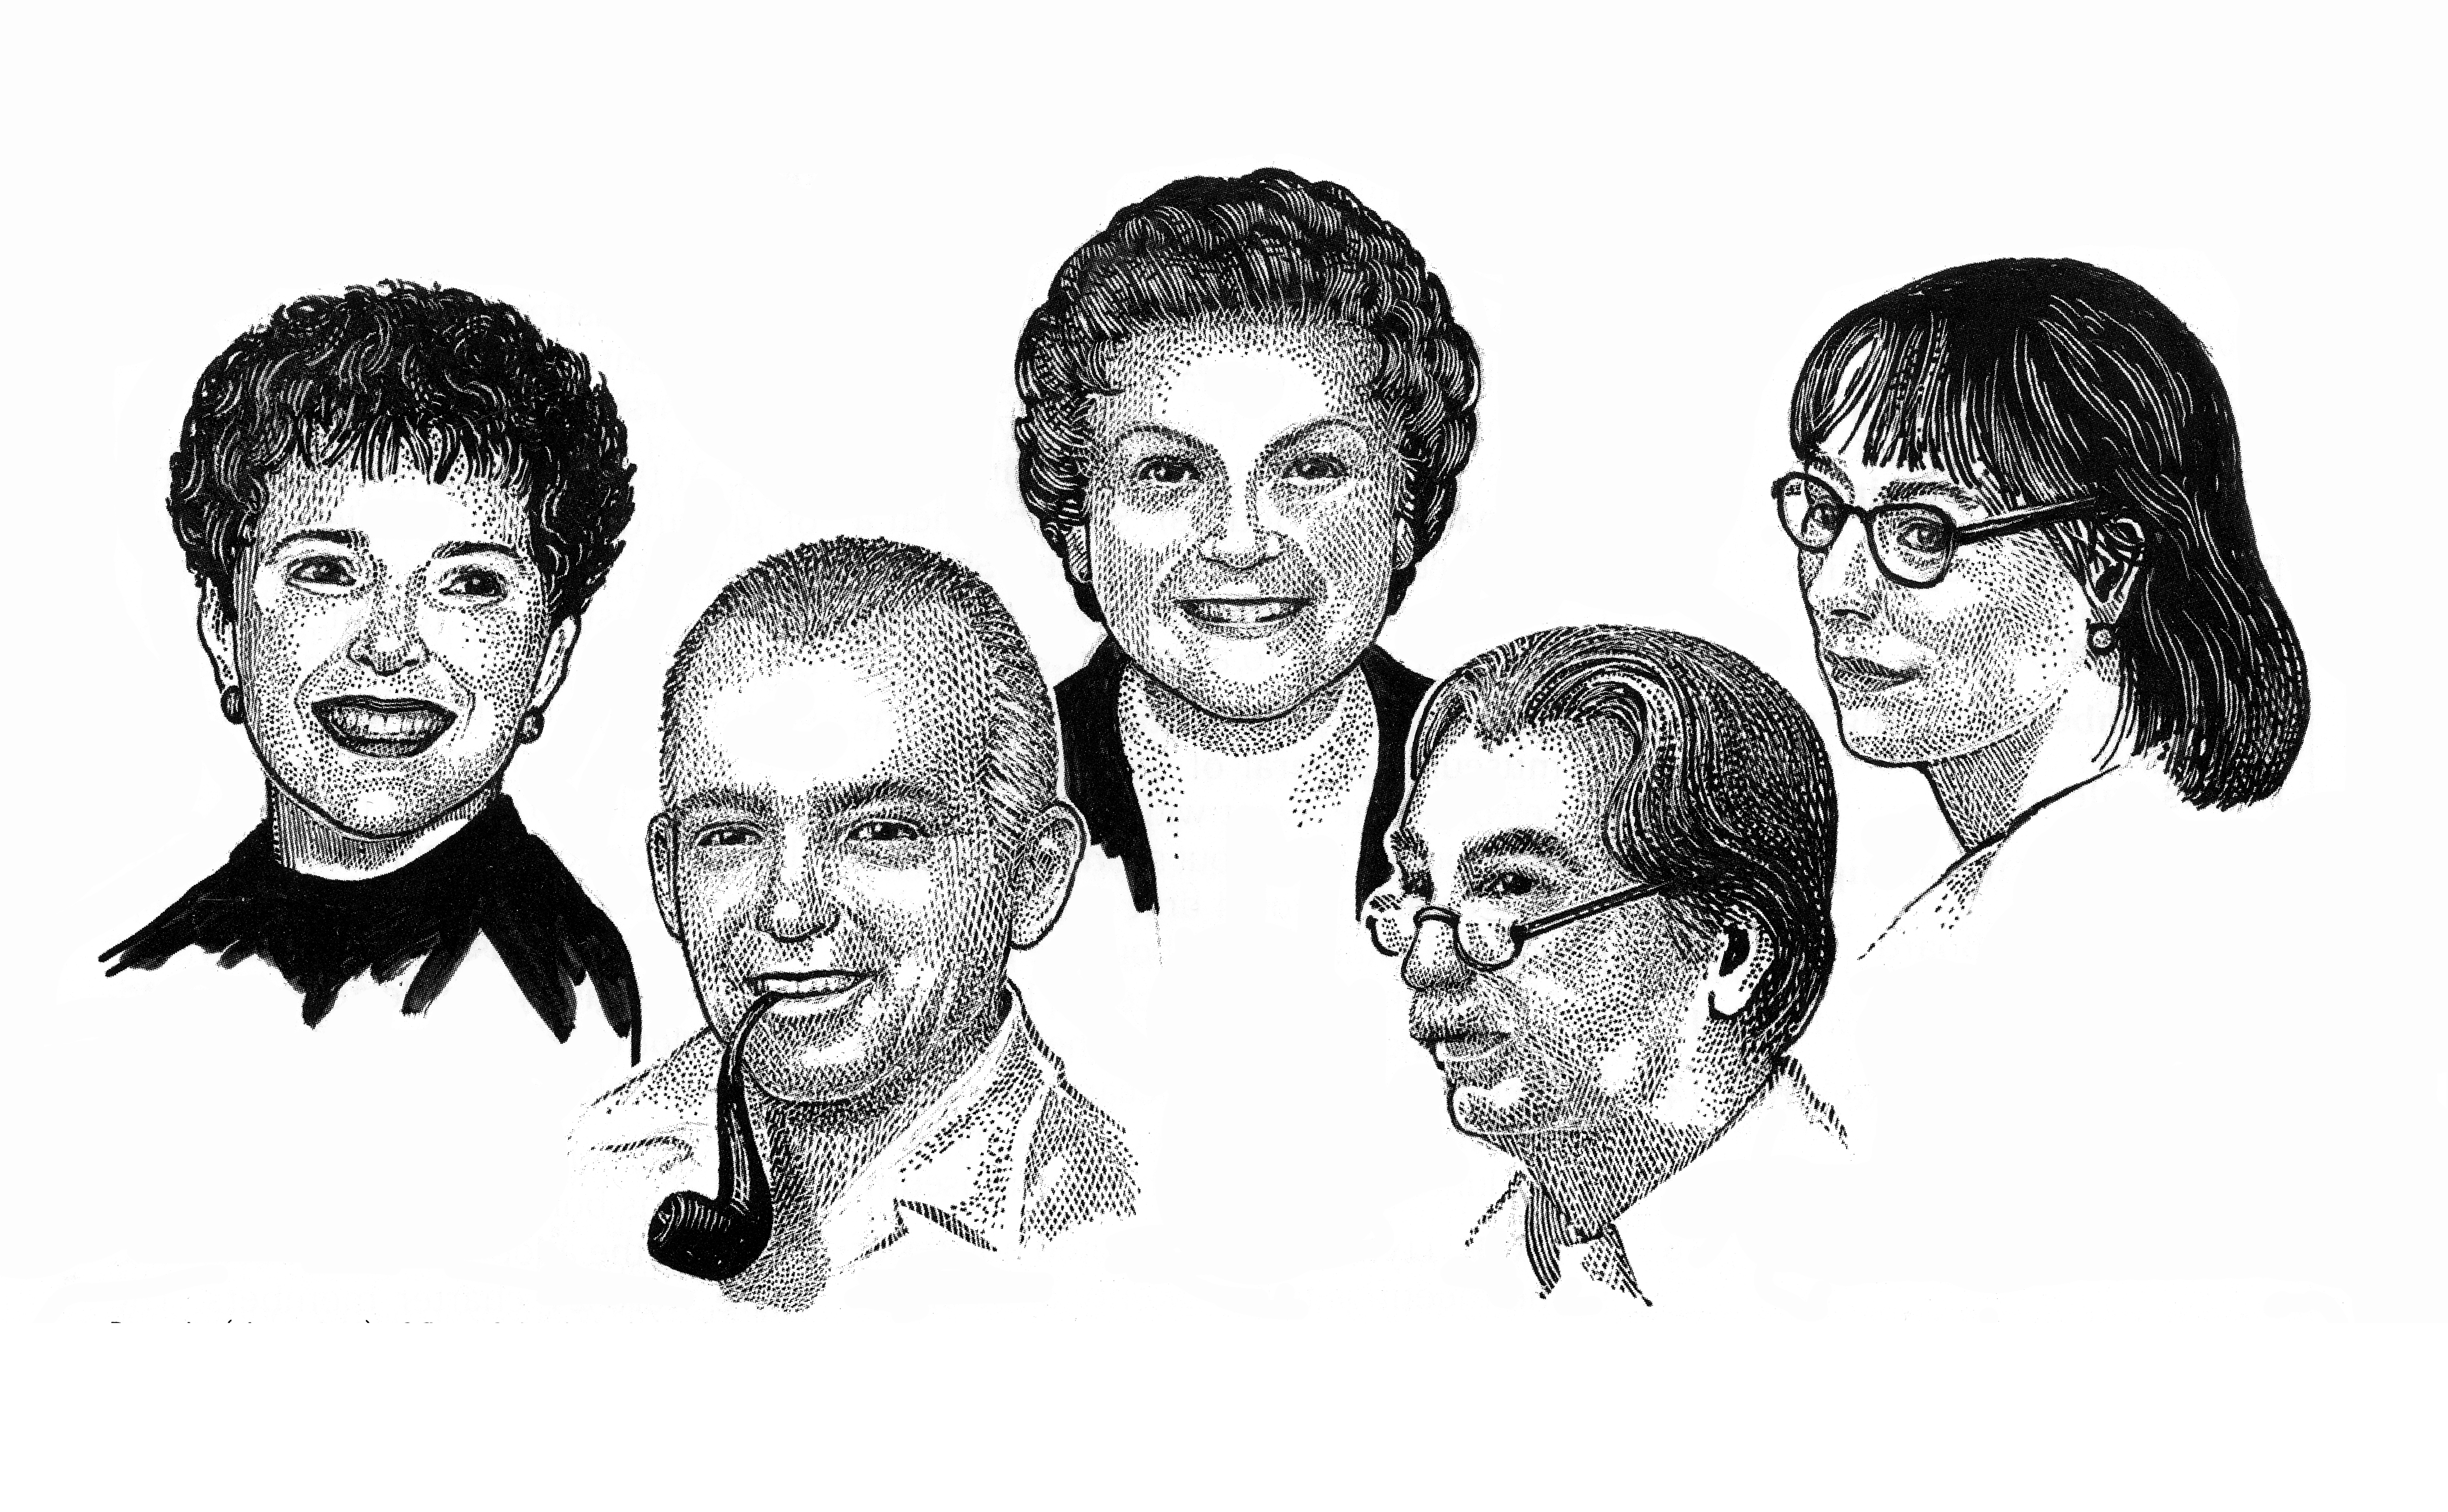 Portraits (circa 1968) of some of the founders and first officers of GNSI – from left to right: Elaine R.S. Hodges, Art Cushman, Elsie Froeschner, Larry Isham and Carolyn Bartlett Gast. Illustration by Trudy Nicholson.